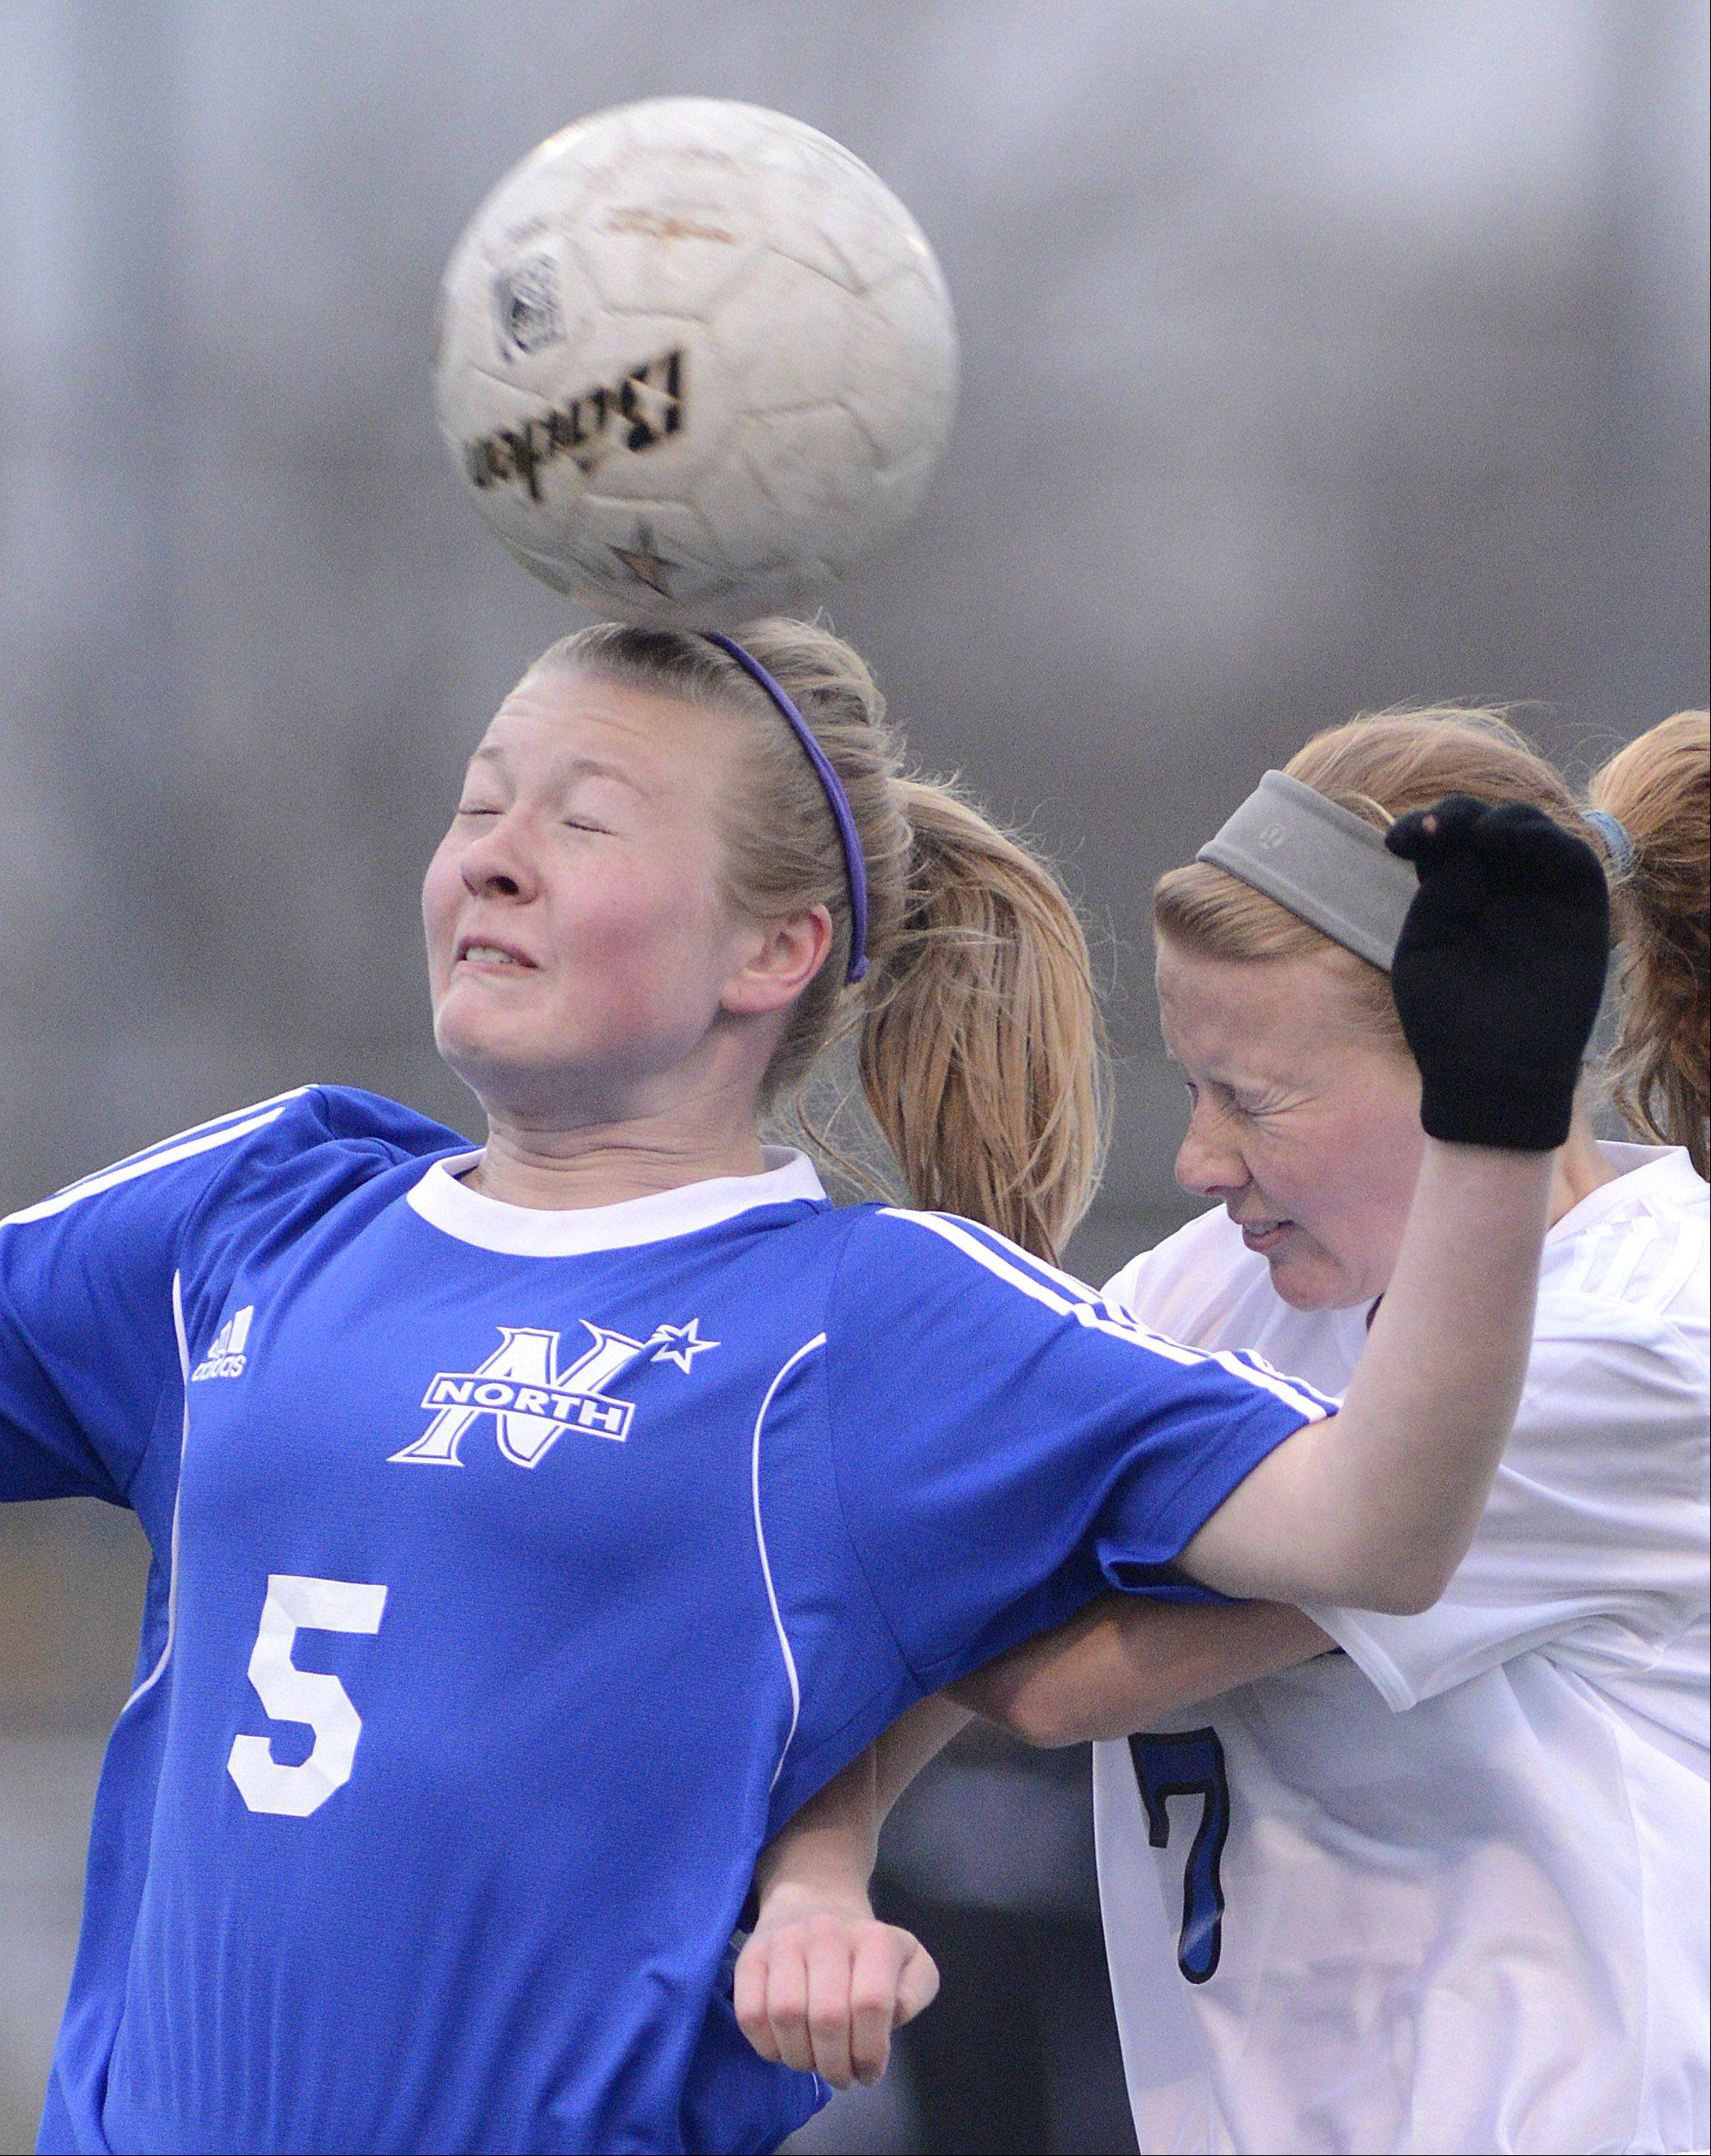 St. Charles North's Natalie Winkates heads the ball before Geneva's Hope Goodman can get to it in the first half on Tuesday, April 9.